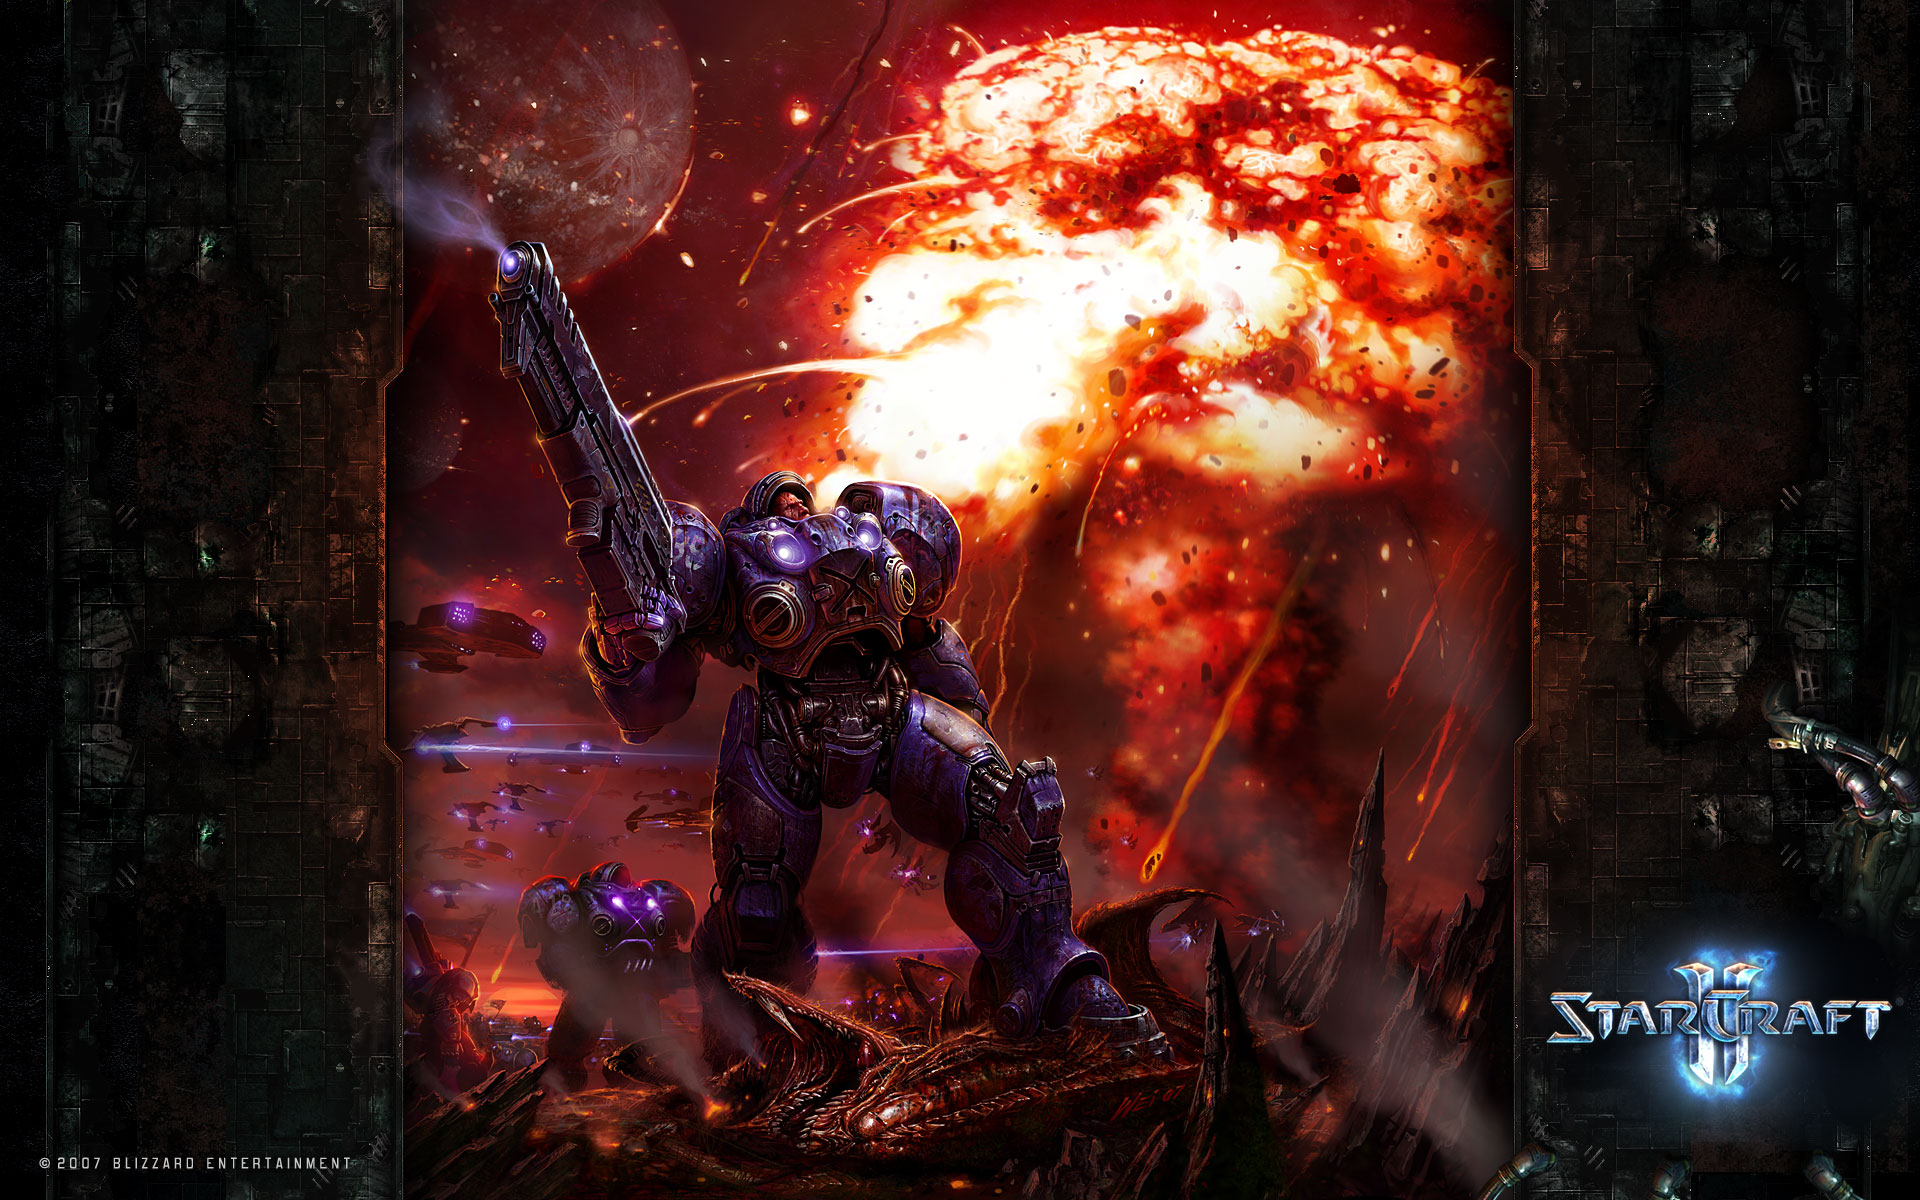 starcraft 2 tips find out the best build orders for protoss  zerg and terran starcraft starcraft 2 guide 2018 starcraft 2 guide zerg